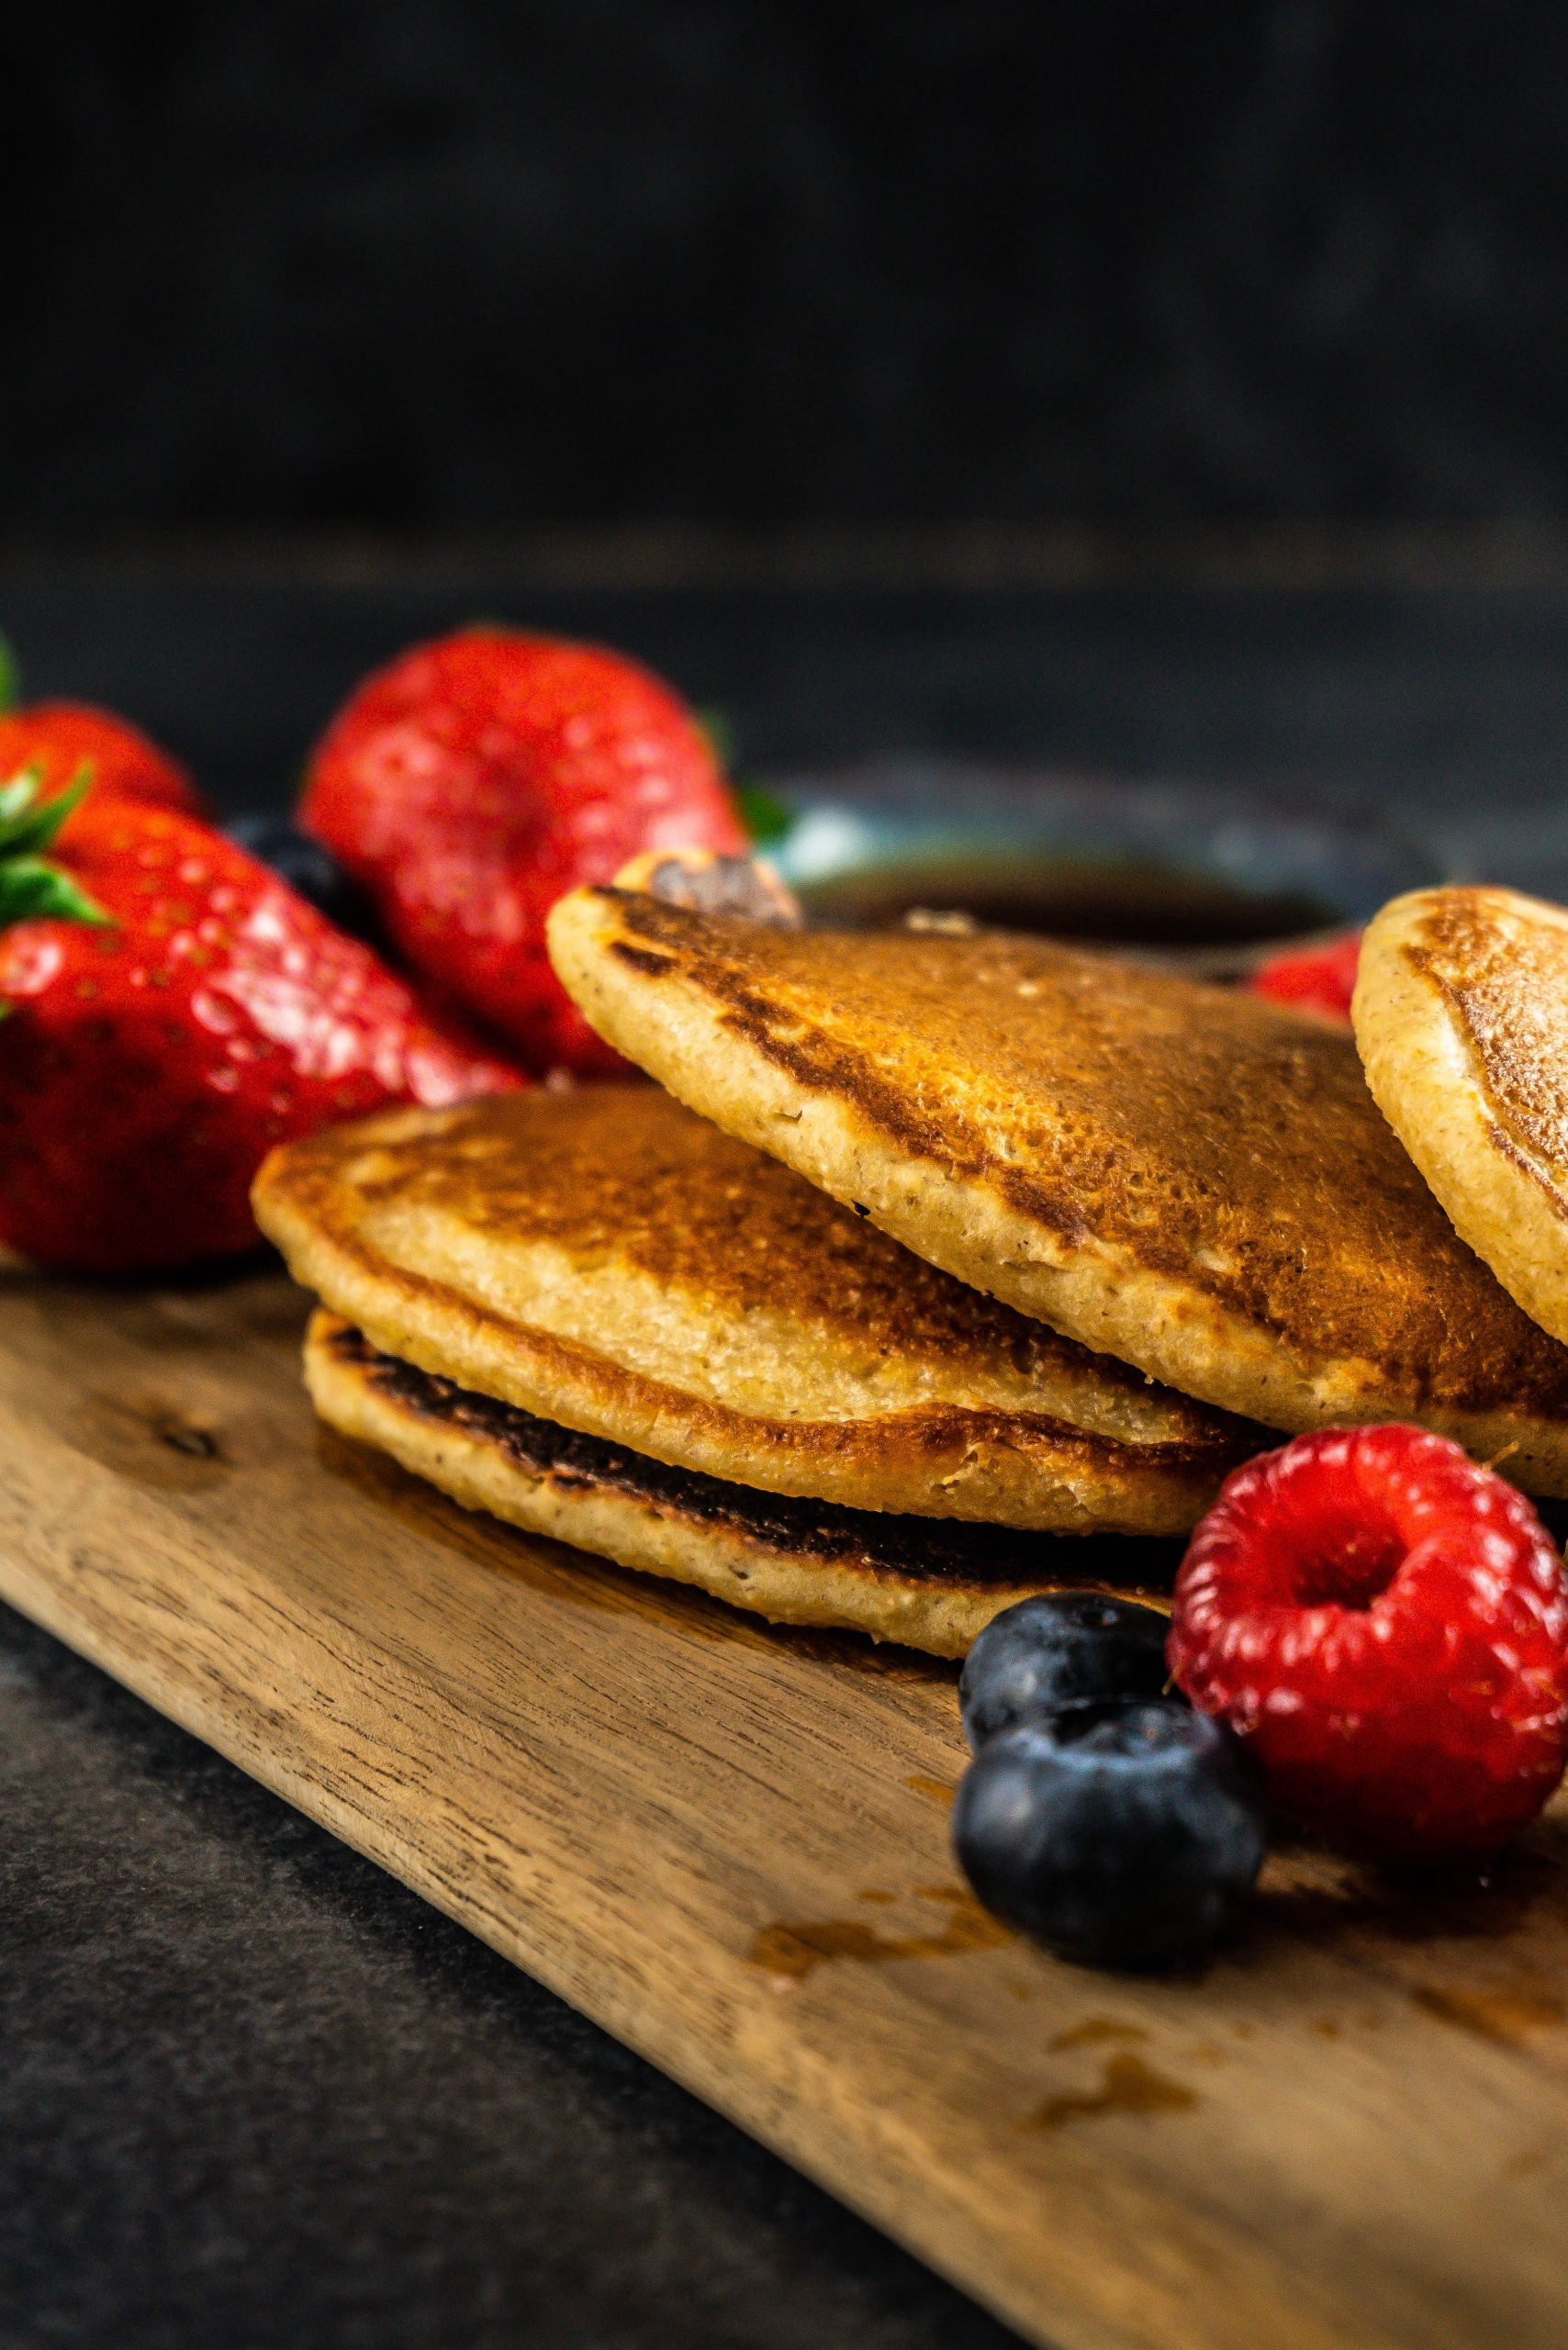 A stack of Fluffy Lemon Buttermilk Pancakes on a wooden board